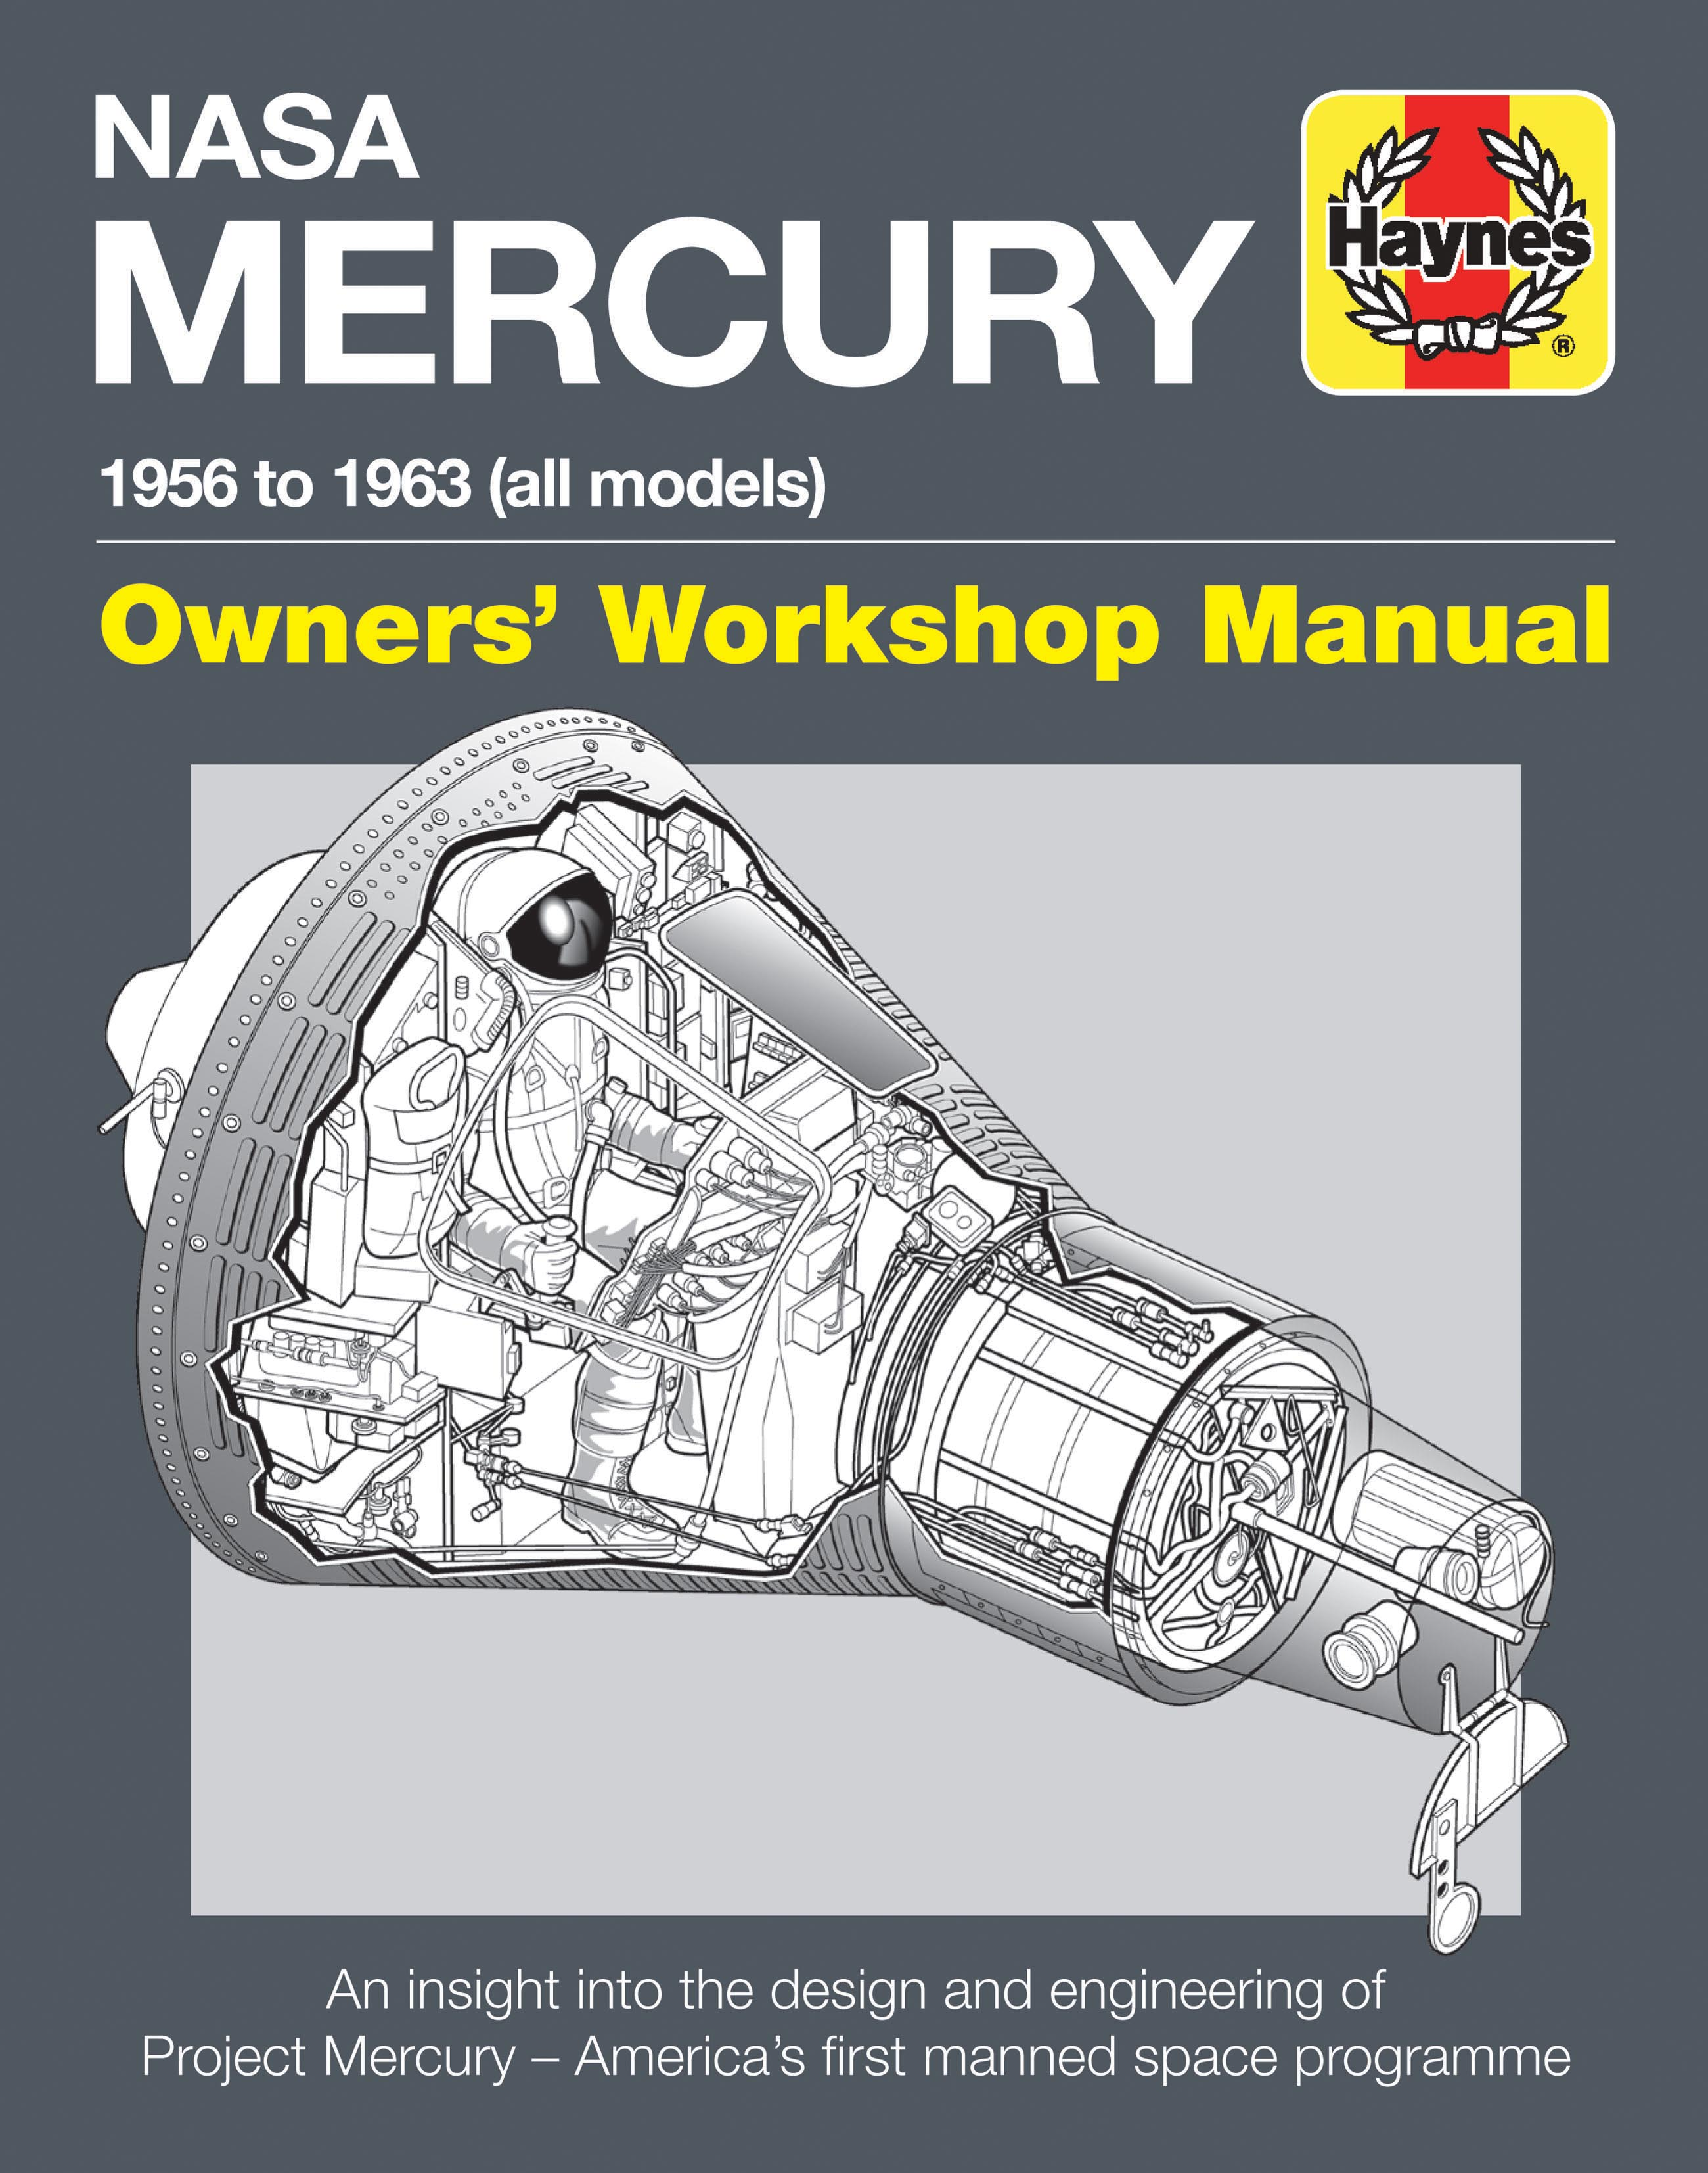 NASA Mercury Owners' Workshop Manual - 1958 to 1963 (all models)